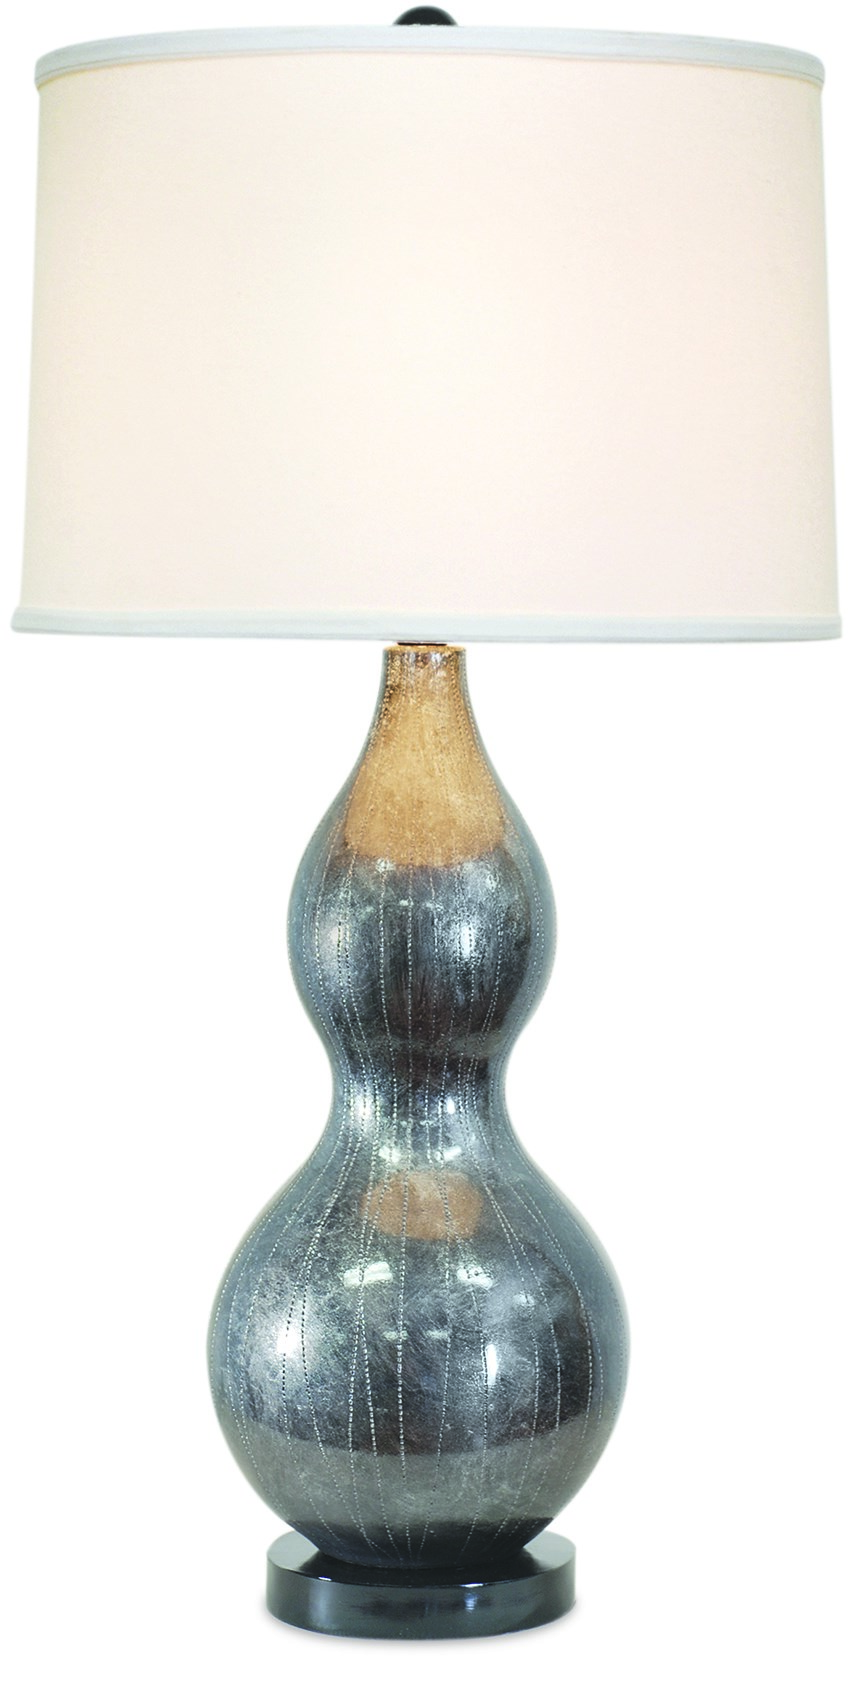 Artisan Lighting Home Decor Inc EquityNet